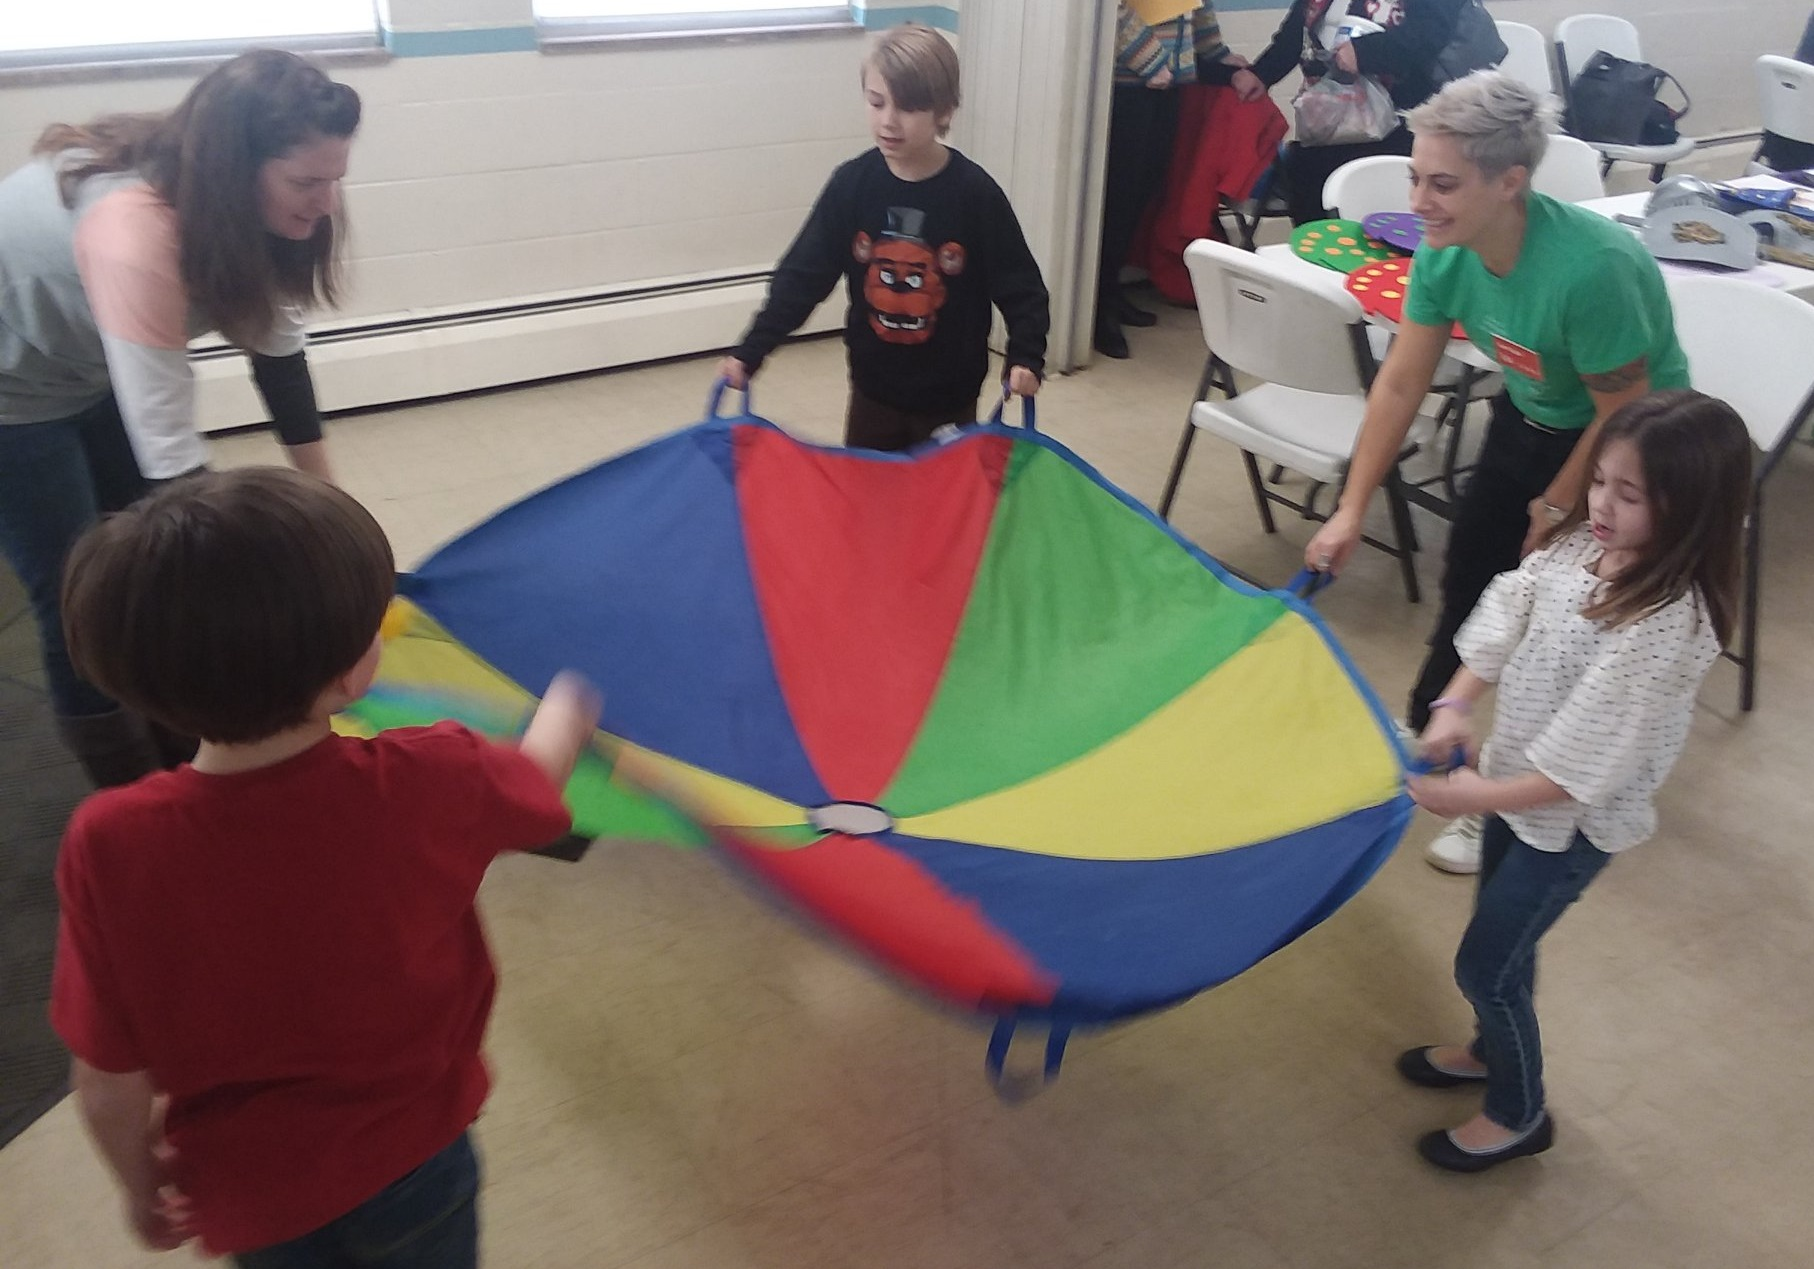 Parachute in use